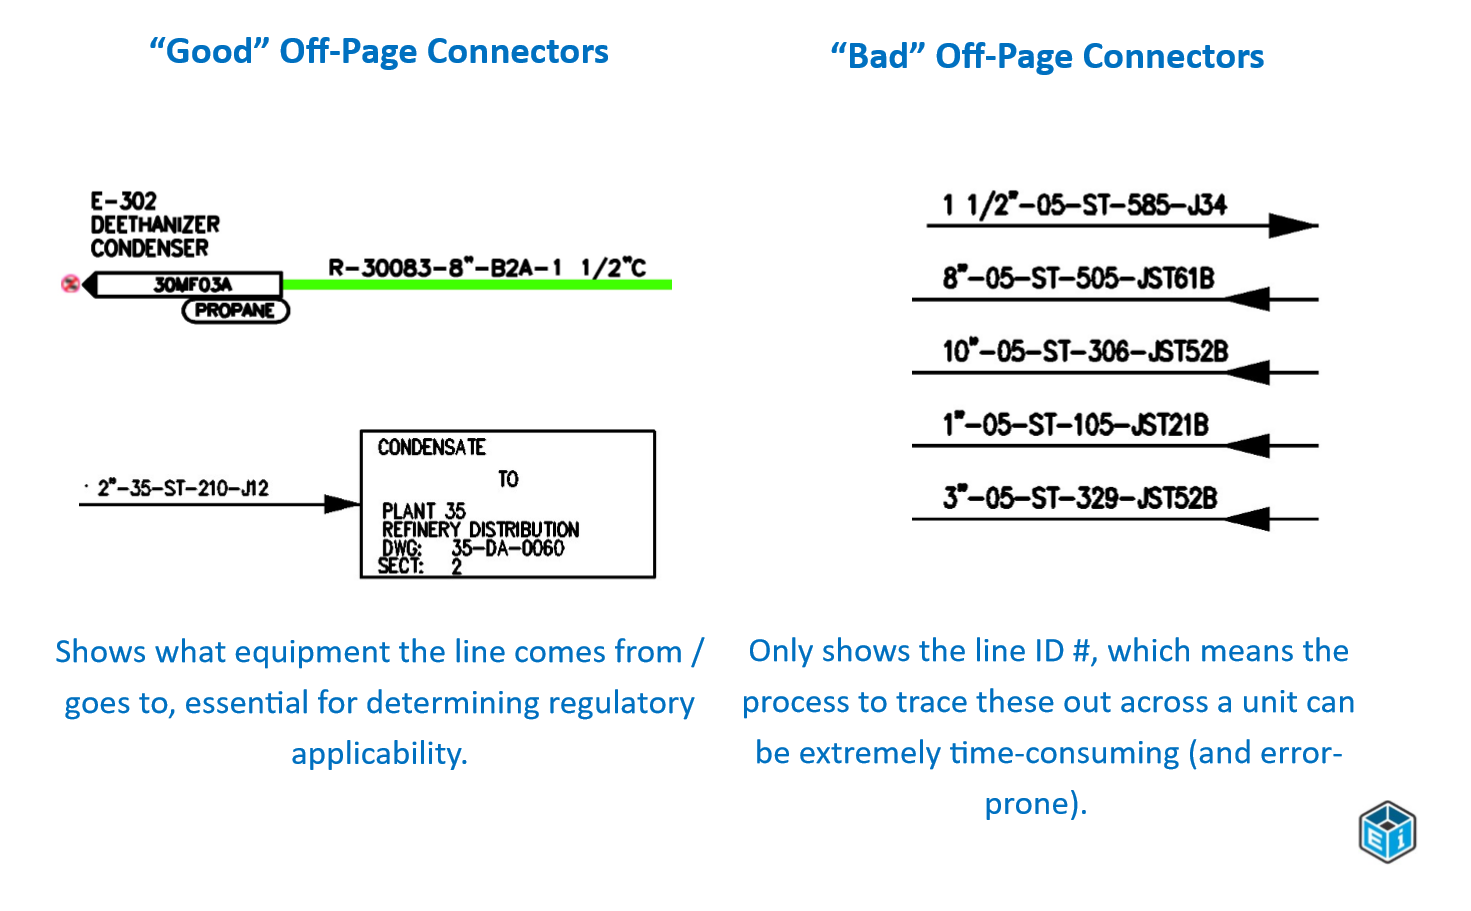 The Issue with OPCs: TracKING Applicability Throughout the Web of Interconnected Off-Page Connectors